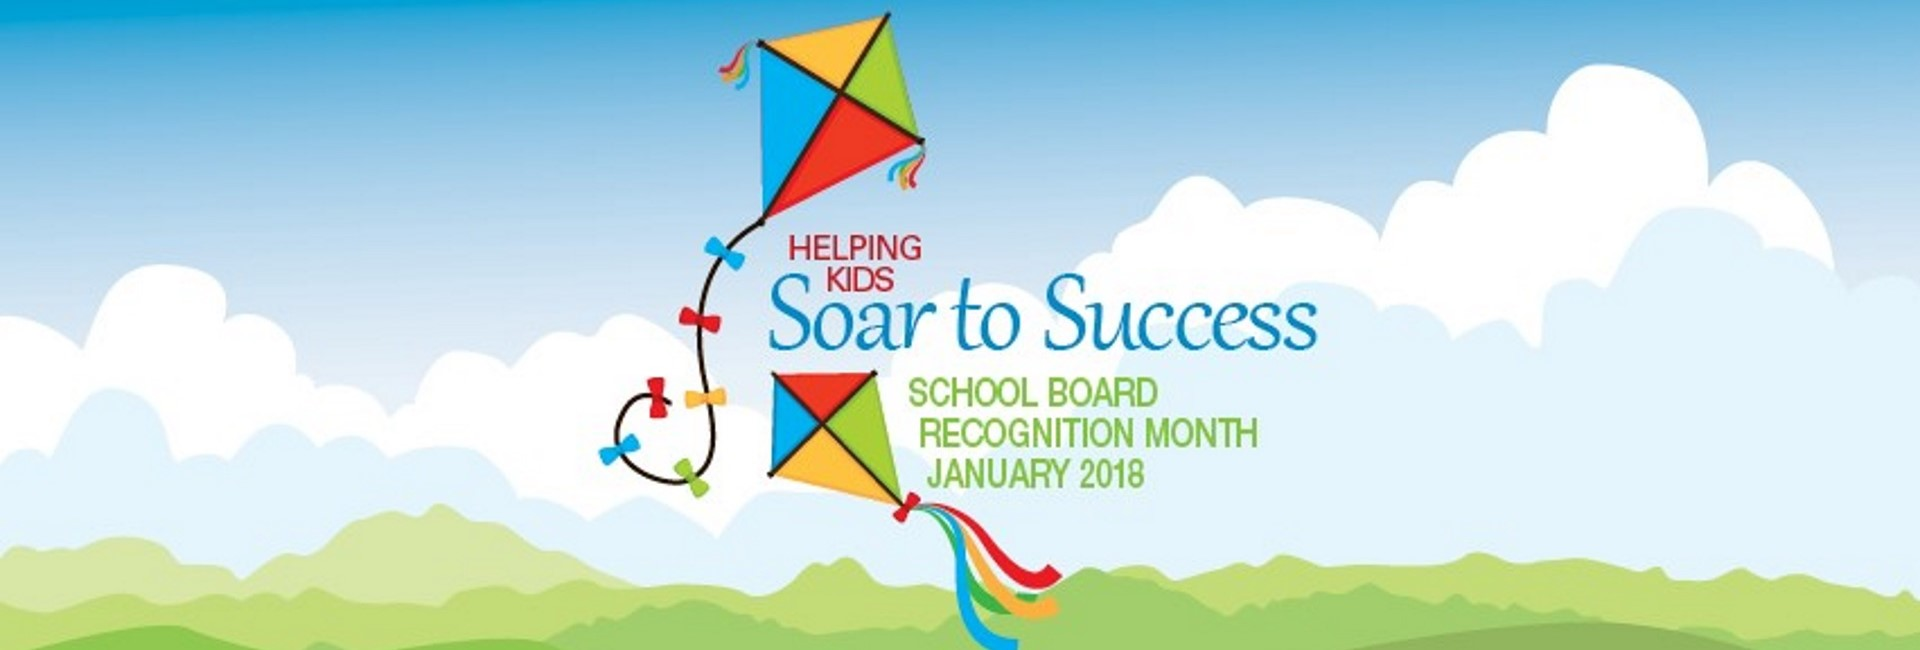 School Board Recognition Month - January 2018